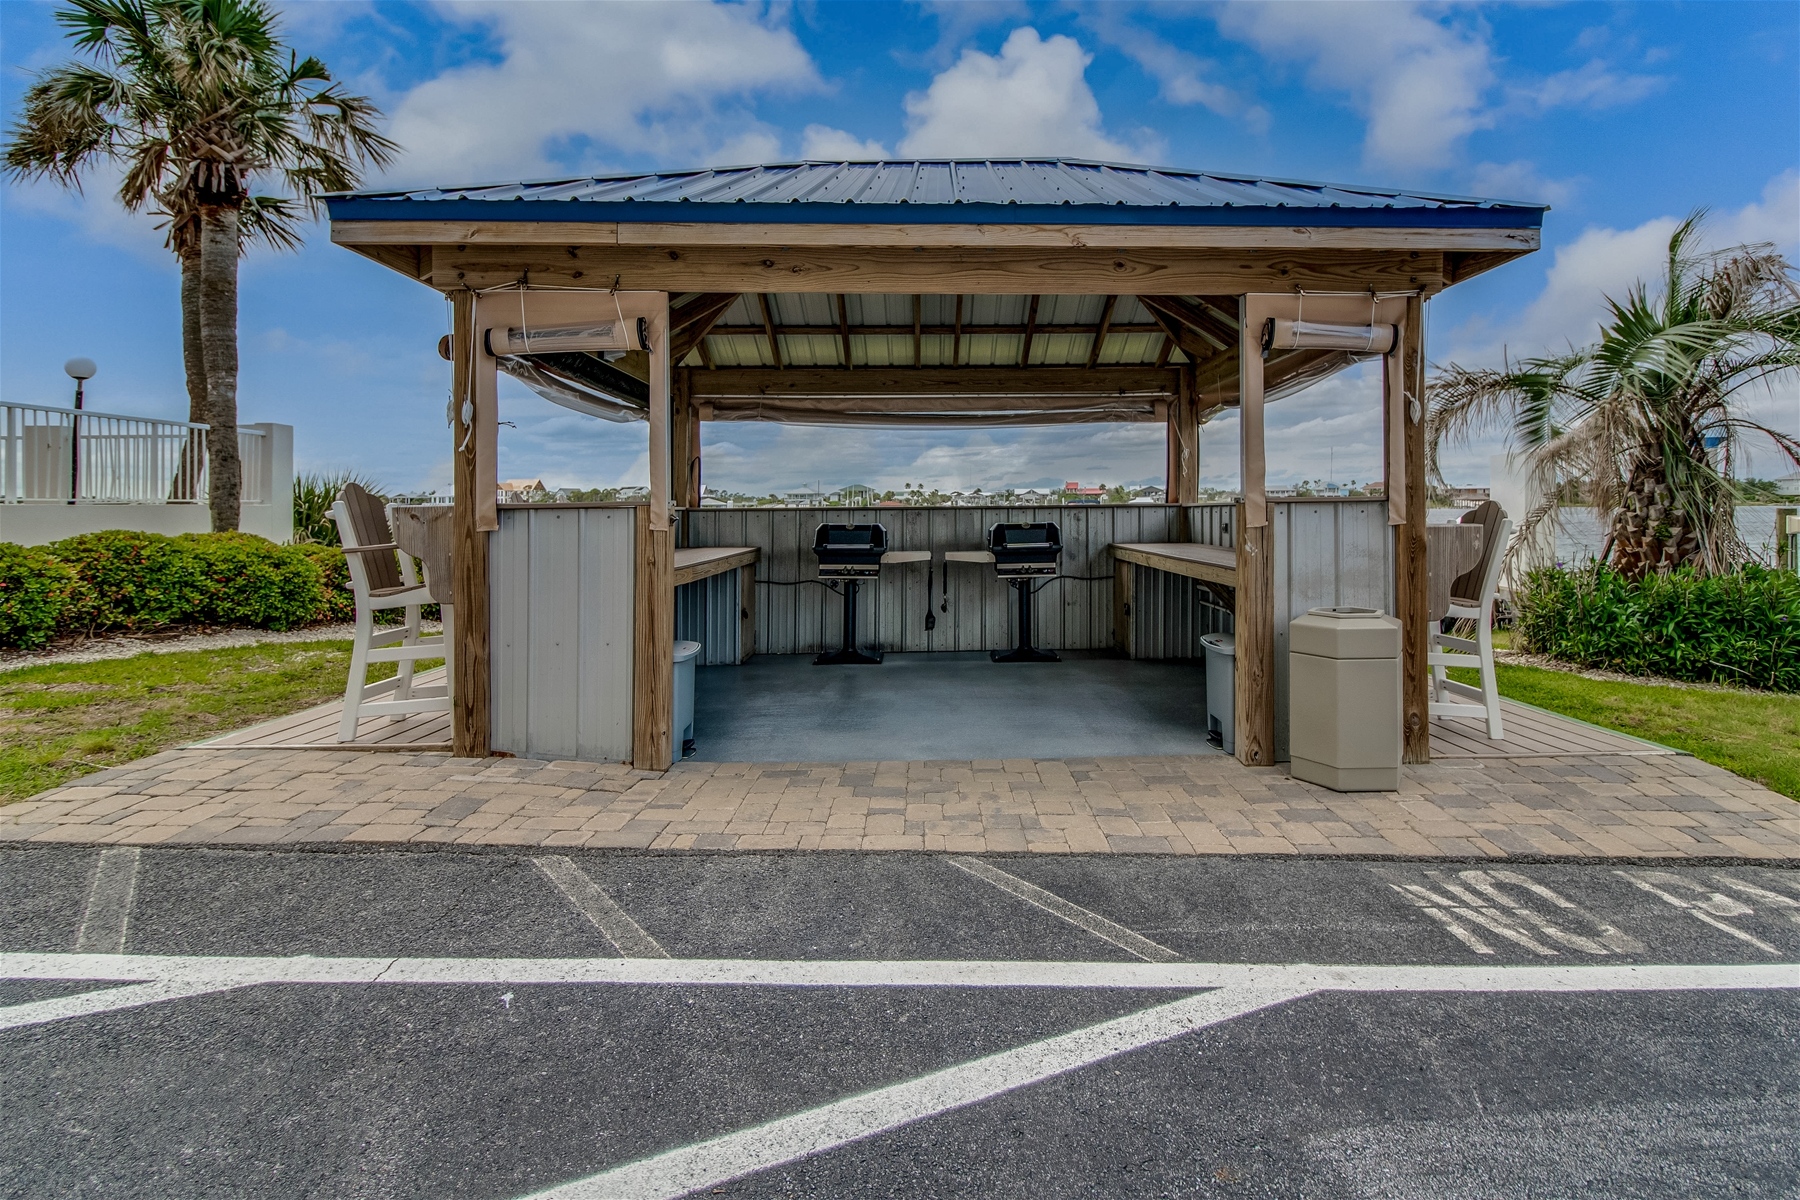 SeaSpray BBQ Grill area with two grills